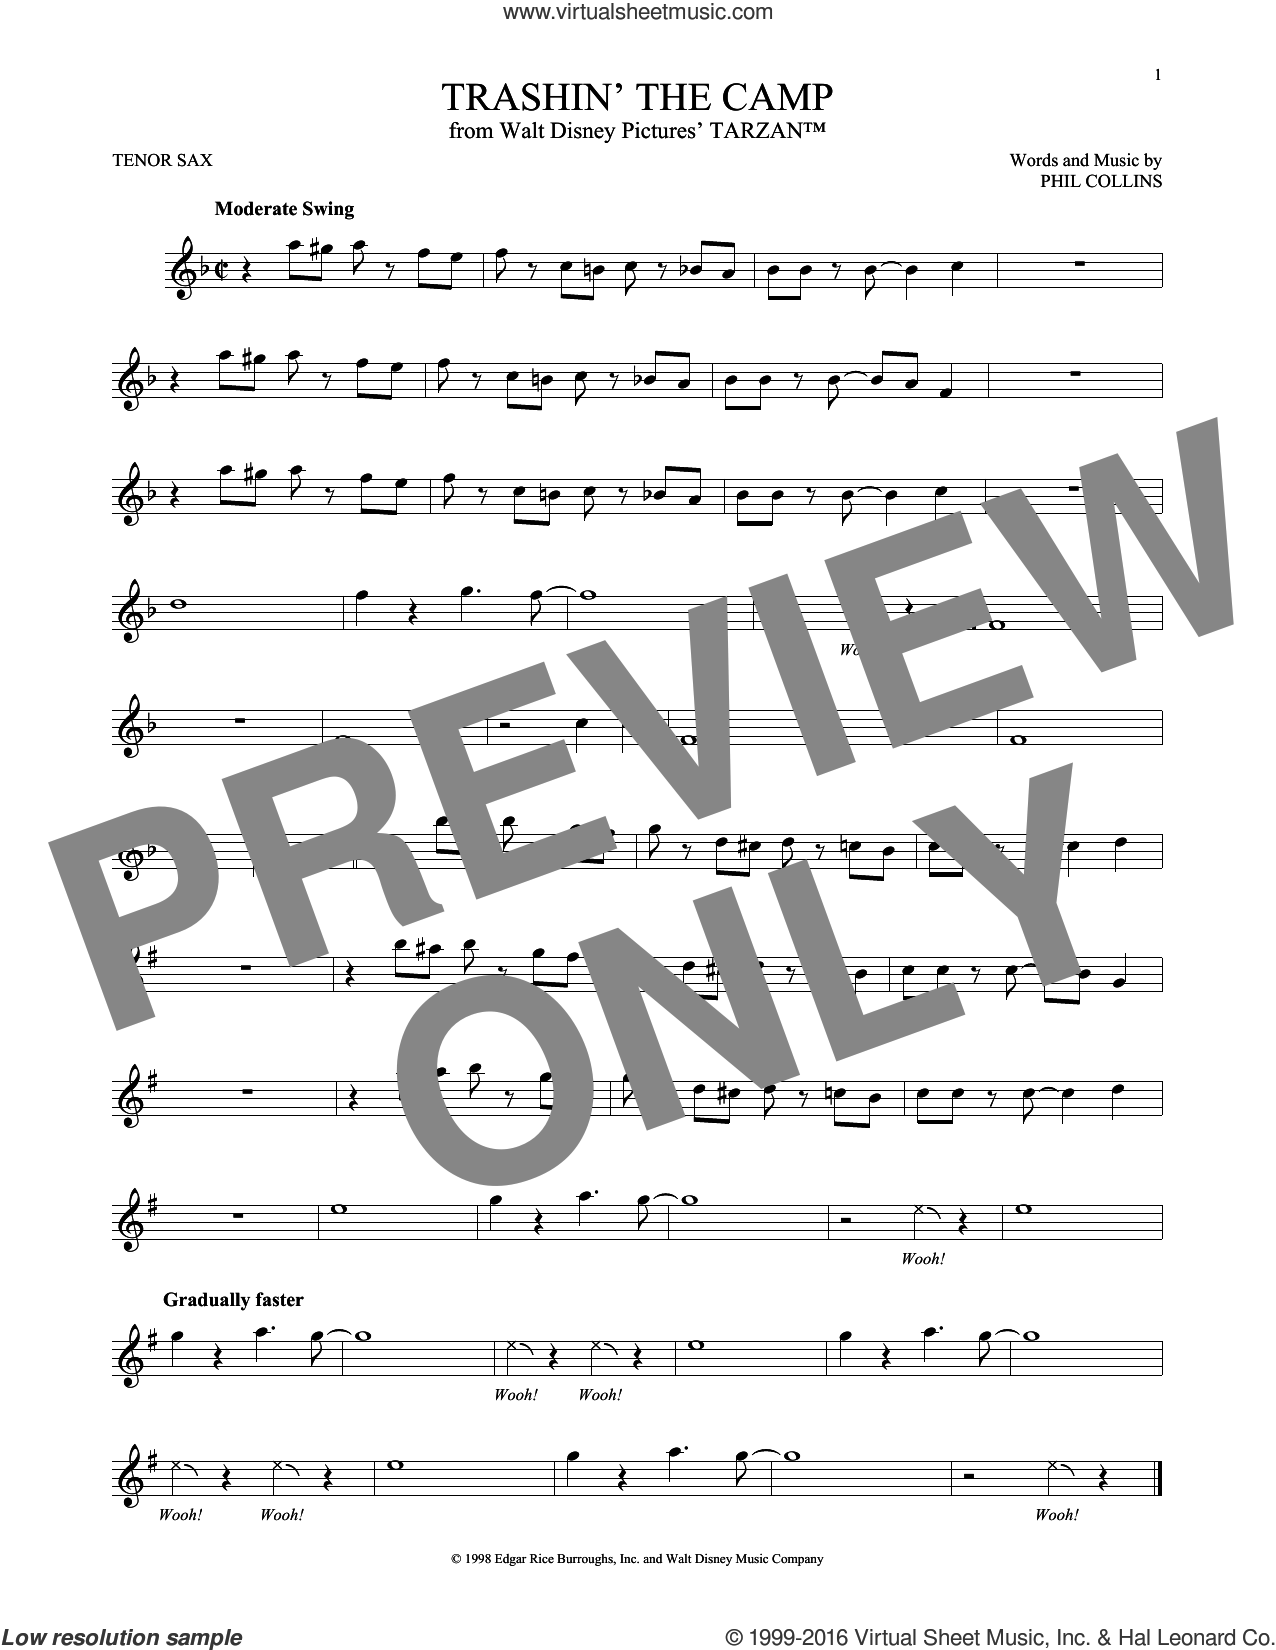 Trashin' The Camp sheet music for tenor saxophone solo by Phil Collins. Score Image Preview.